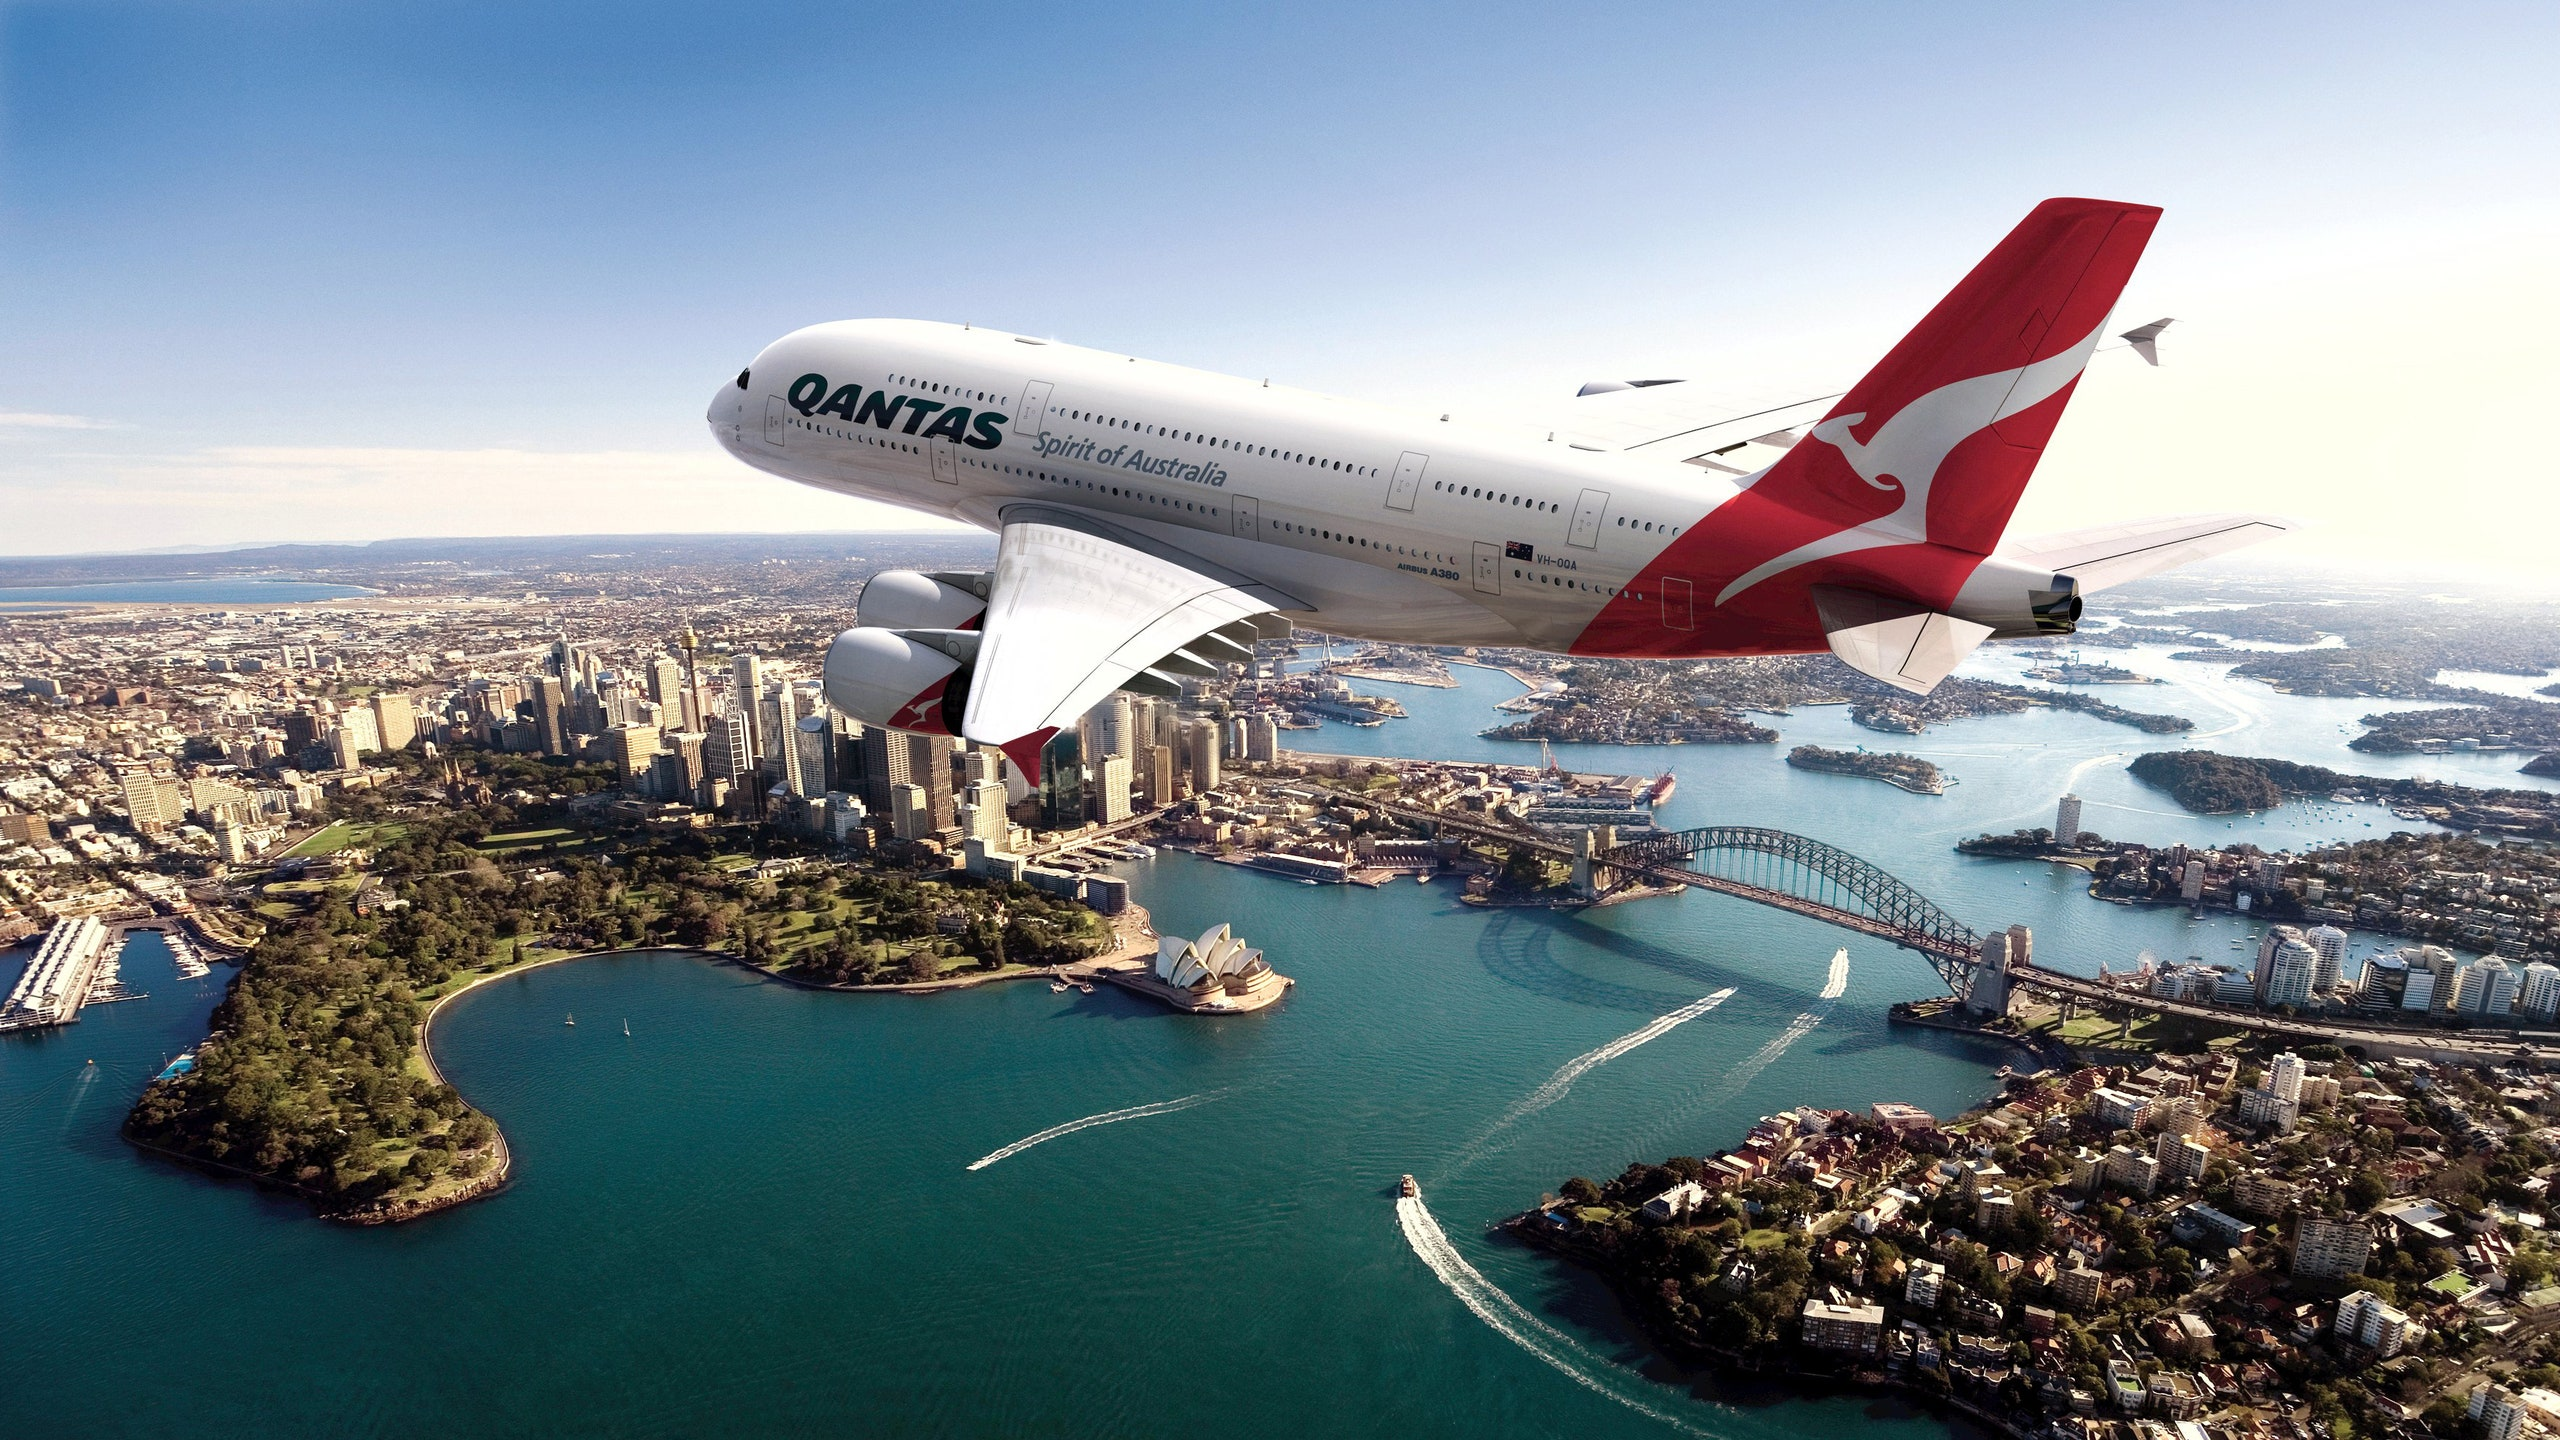 Qantas CEO has taken a pay cut from $24 million in 2017 to just $2 million in 2021